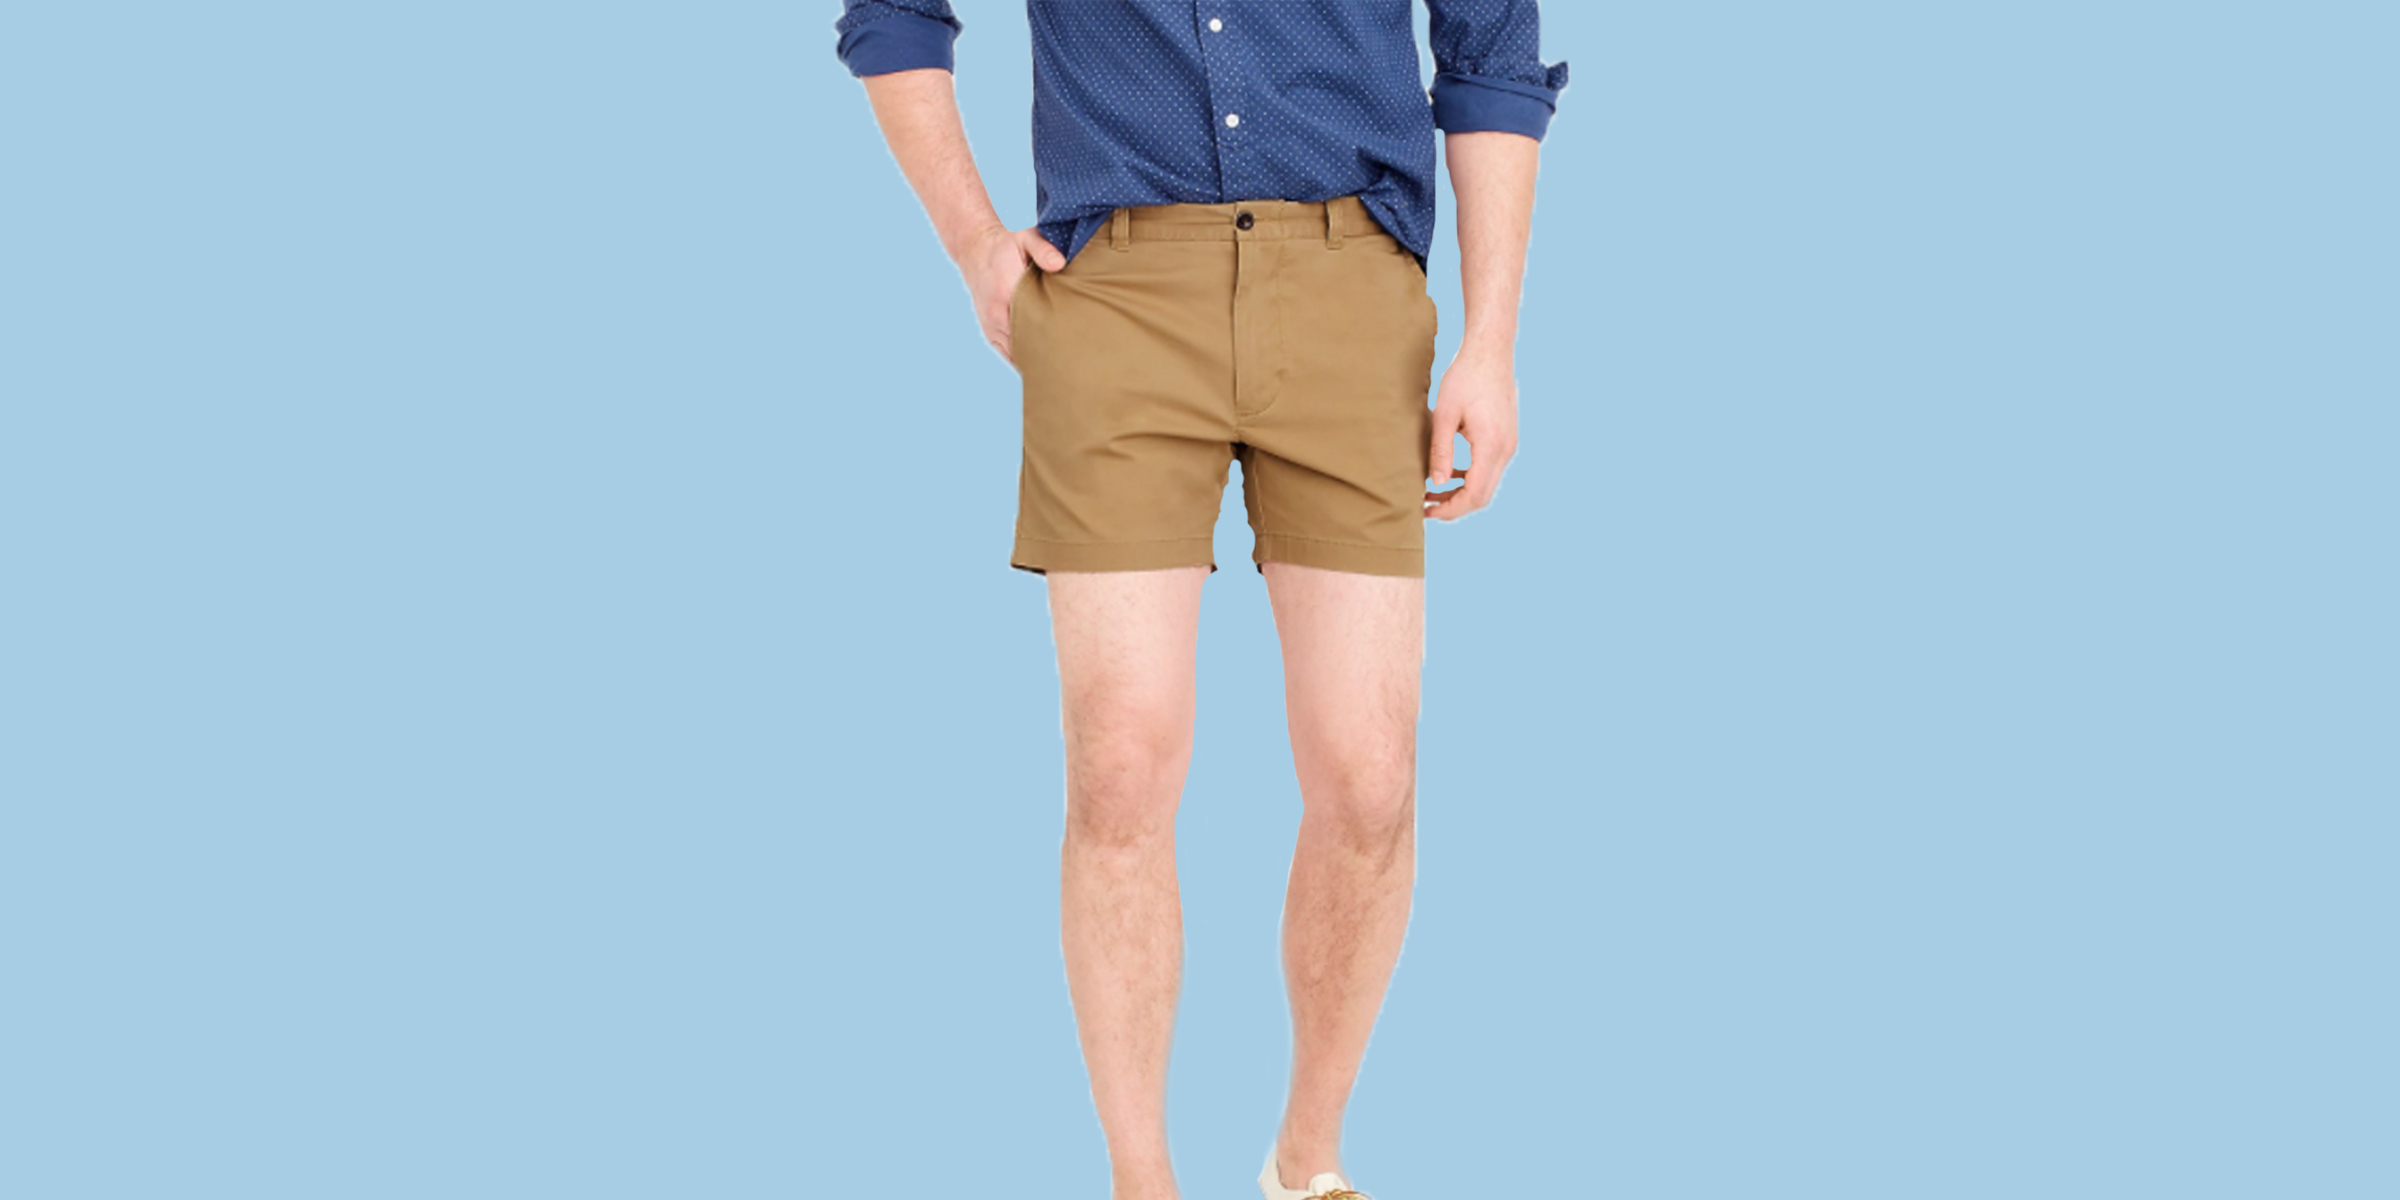 a1c93a039b Short shorts for men are back this spring